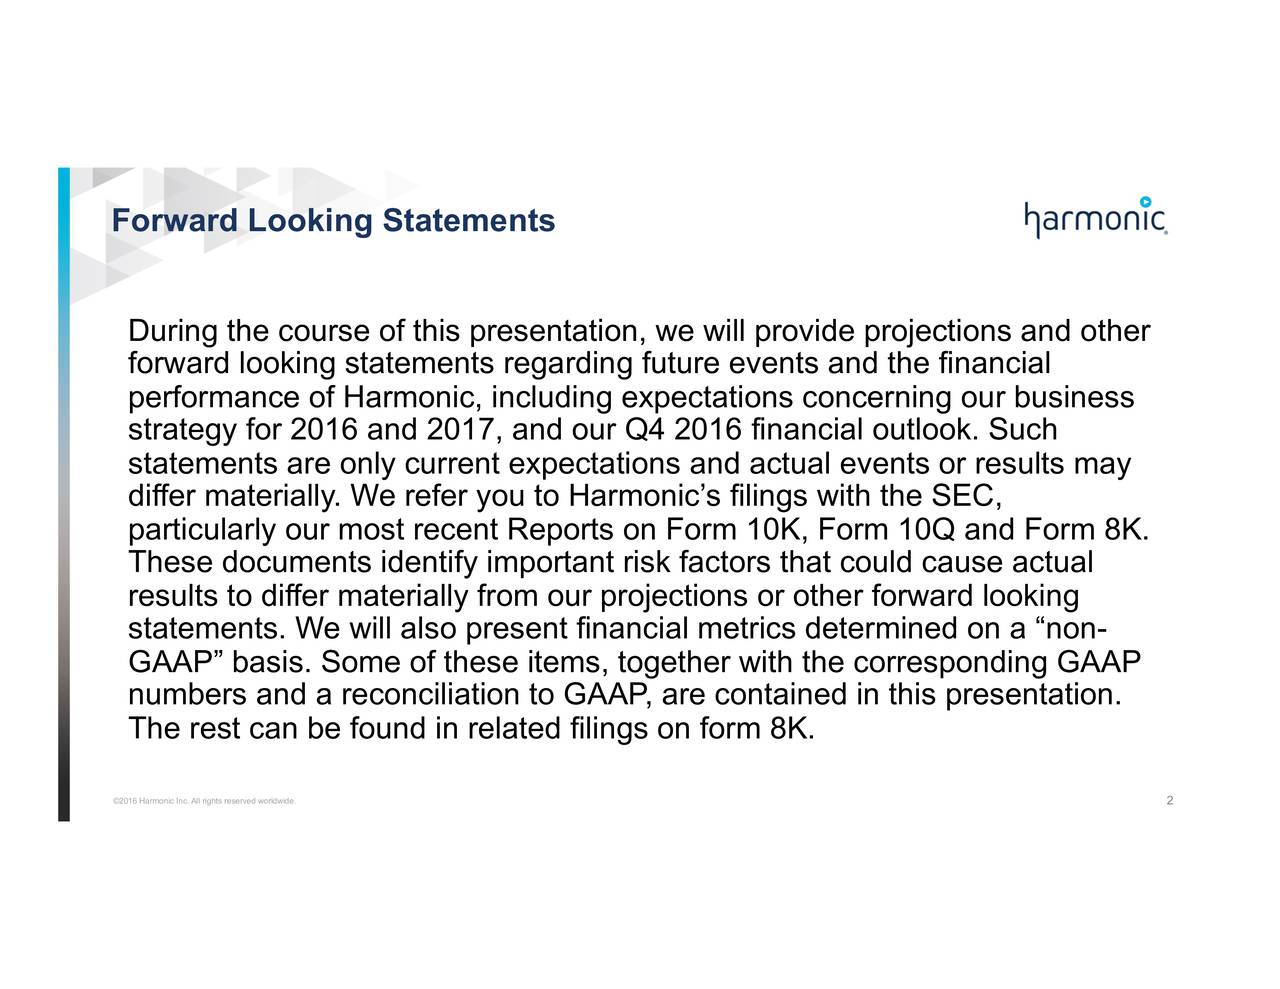 During the course of this presentation, we will provide projections and other forward looking statements regarding future events and the financial performance of Harmonic, including expectations concerning our business strategy for 2016 and 2017, and our Q4 2016 financial outlook. Such statements are only current expectations and actual events or results may differ materially. We refer you to Harmonics filings with the SEC, particularly our most recent Reports on Form 10K, Form 10Q and Form 8K. These documents identify important risk factors that could cause actual results to differ materially from our projections or other forward looking statements. We will also present financial metrics determined on a non- GAAP basis. Some of these items, together with the corresponding GAAP numbers and a reconciliation to GAAP, are contained in this presentation. The rest can be found in related filings on form 8K. 2016 Harmonic Inc. All rights reserved worldwide. 2